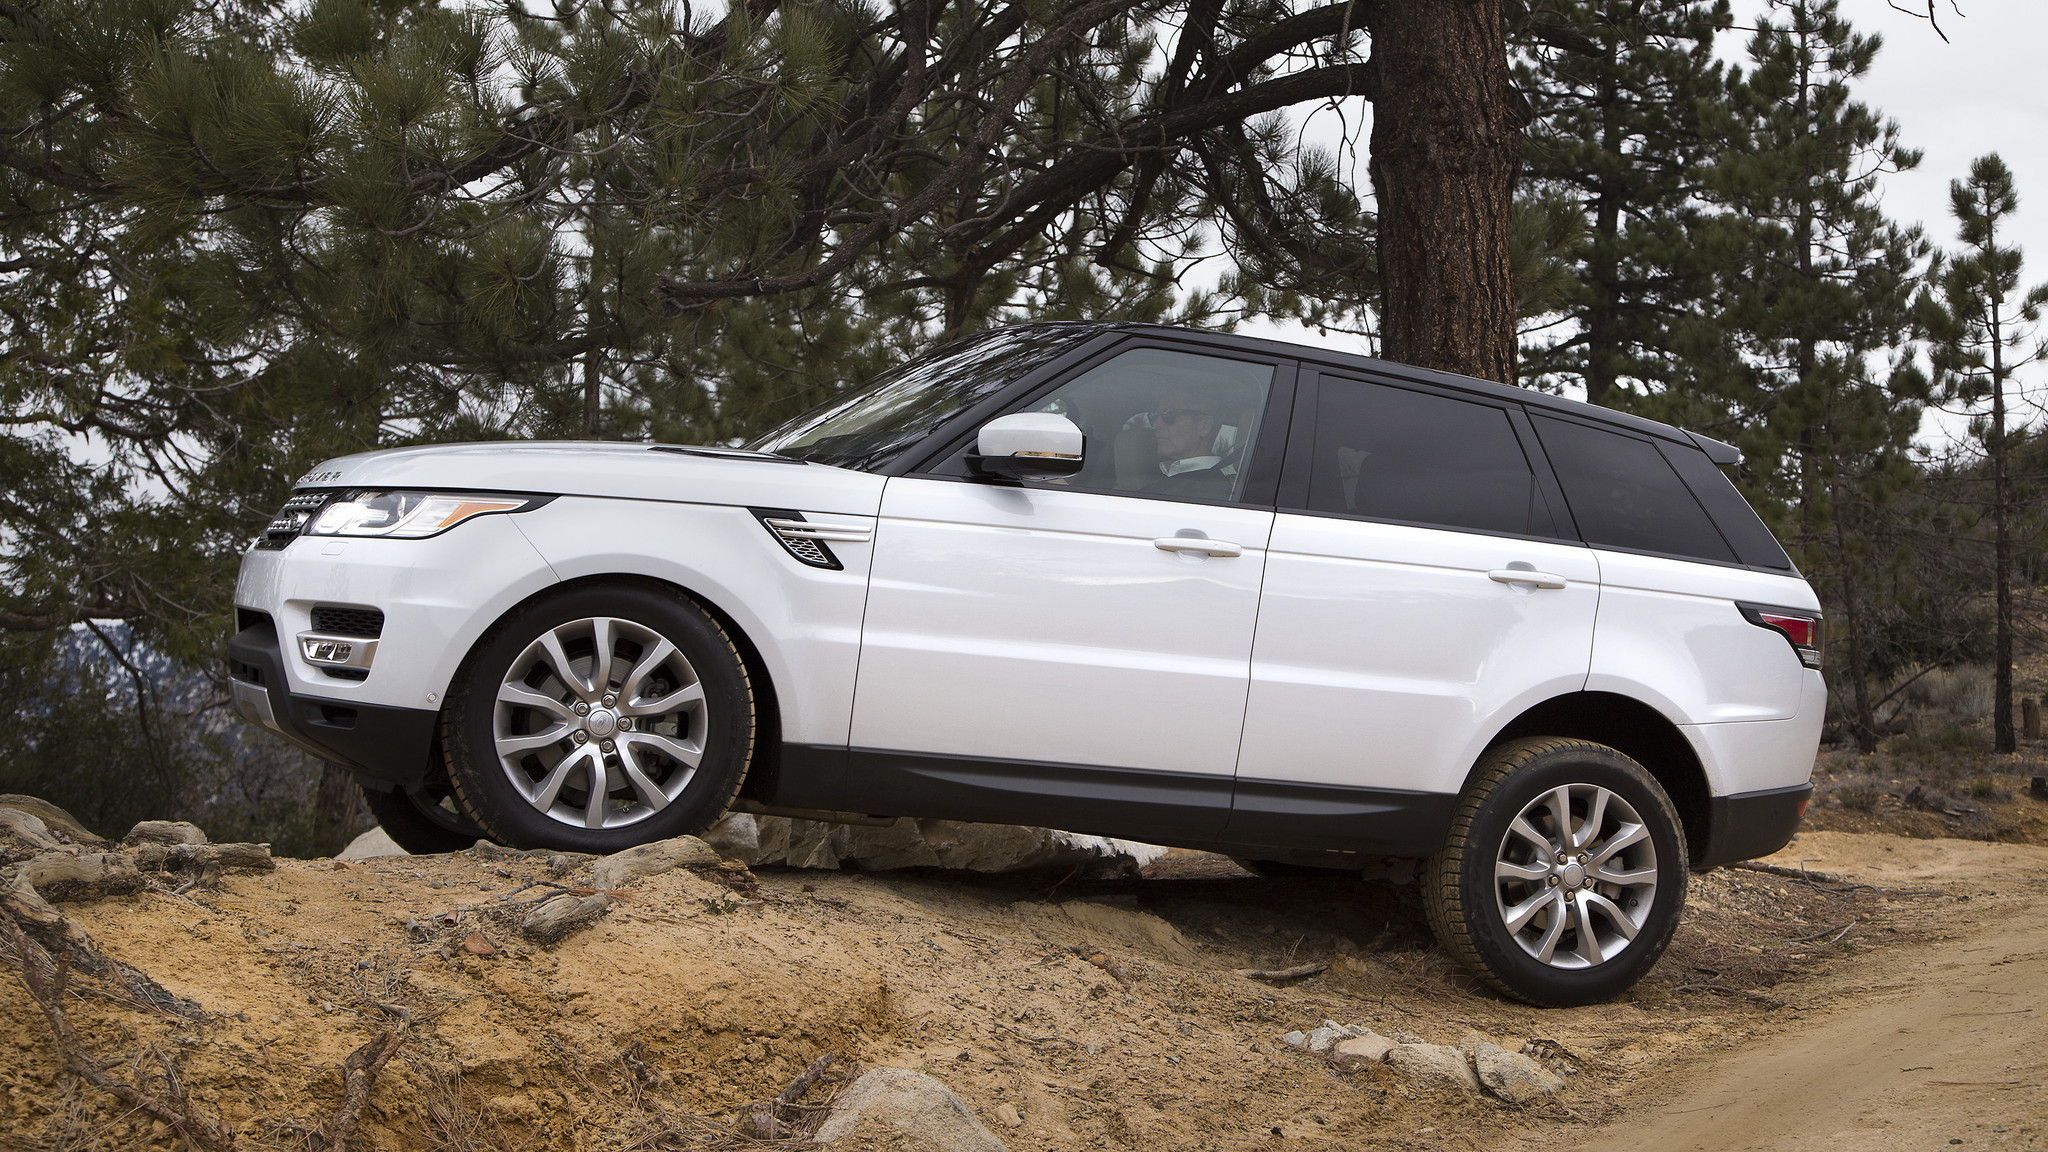 range rover sport hse td6 review a posh drive through el ni o 39 s wickedness la times. Black Bedroom Furniture Sets. Home Design Ideas